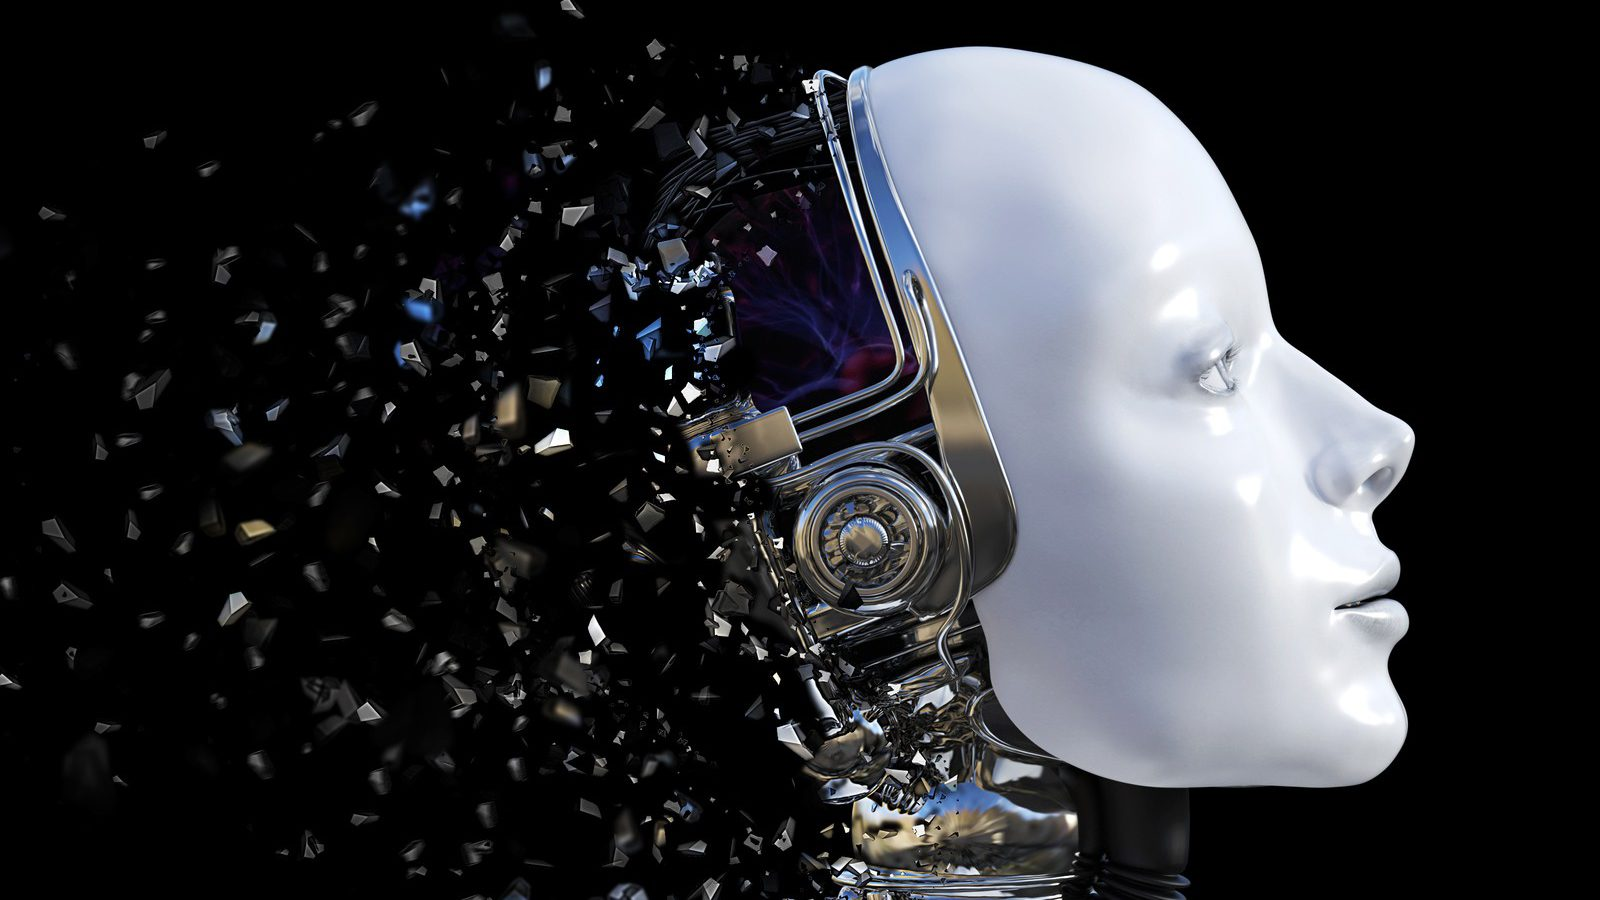 The human side of robots